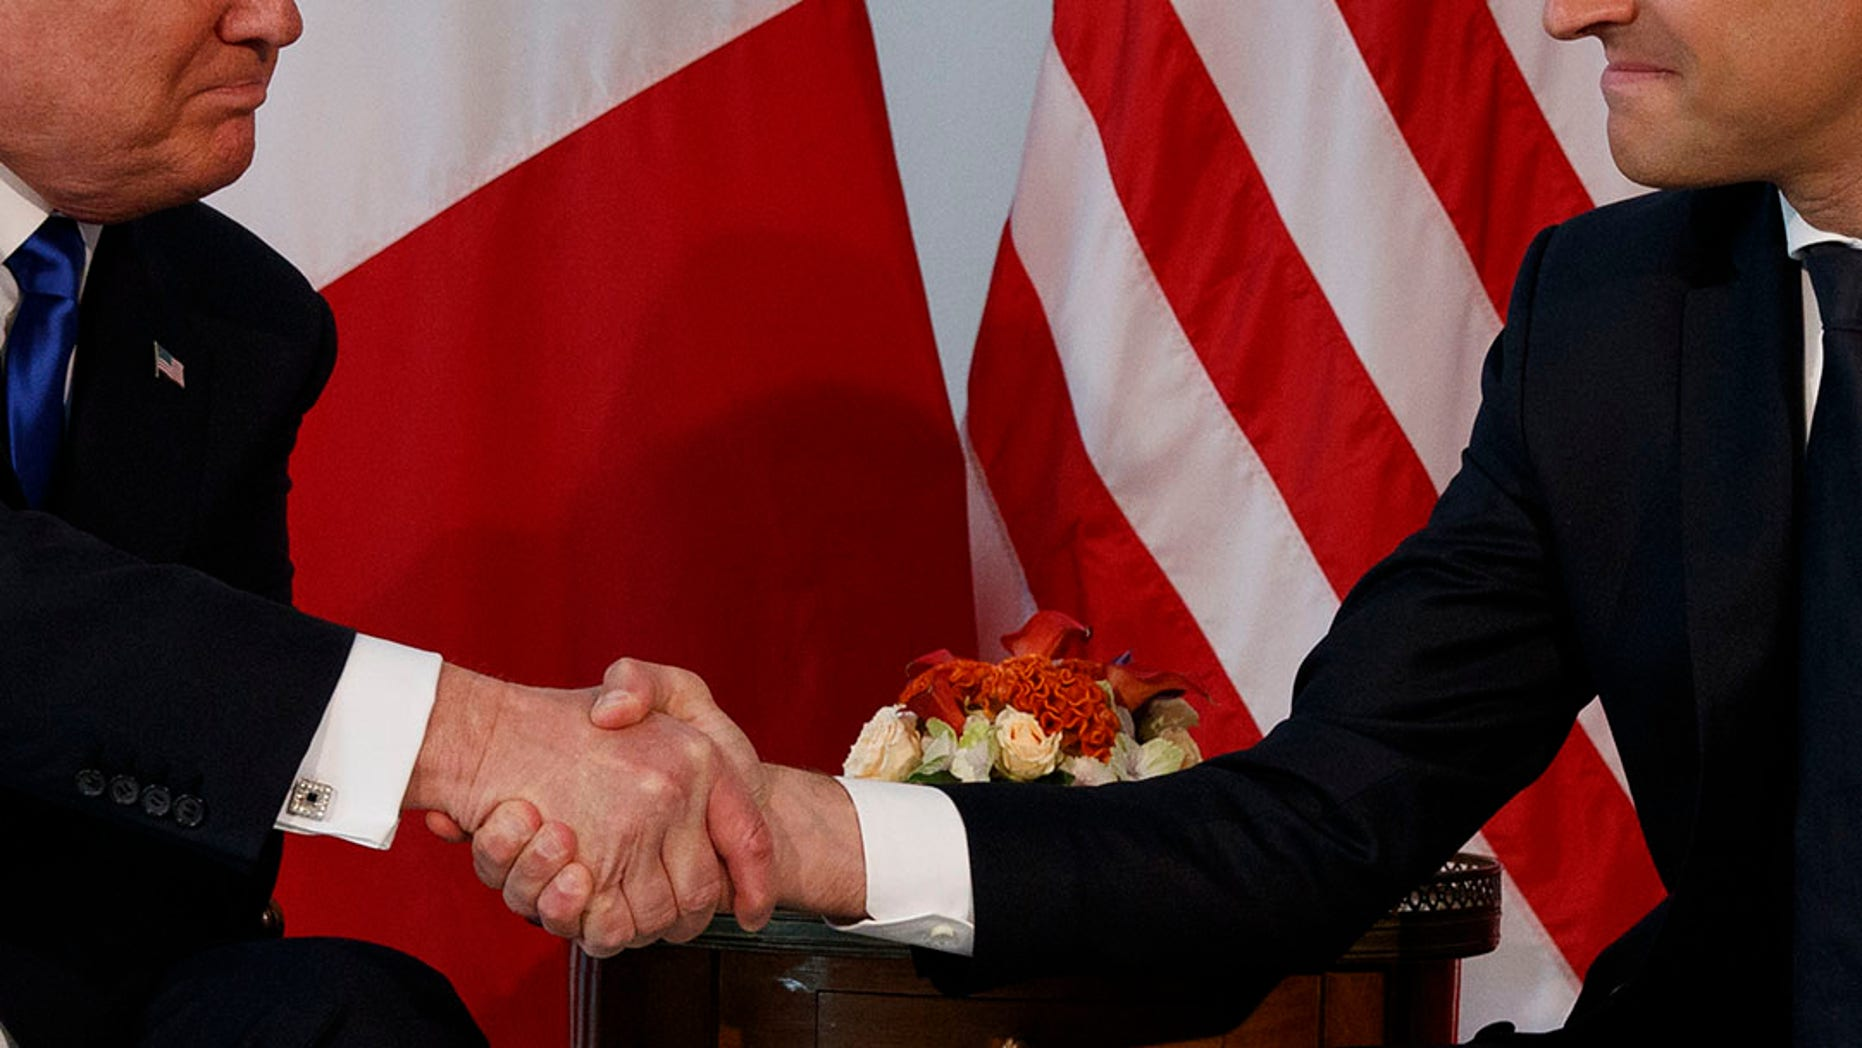 May 25, 2017: President Donald Trump shakes hands with French President Emmanuel Macron during a meeting at the U.S. Embassy in Brussels